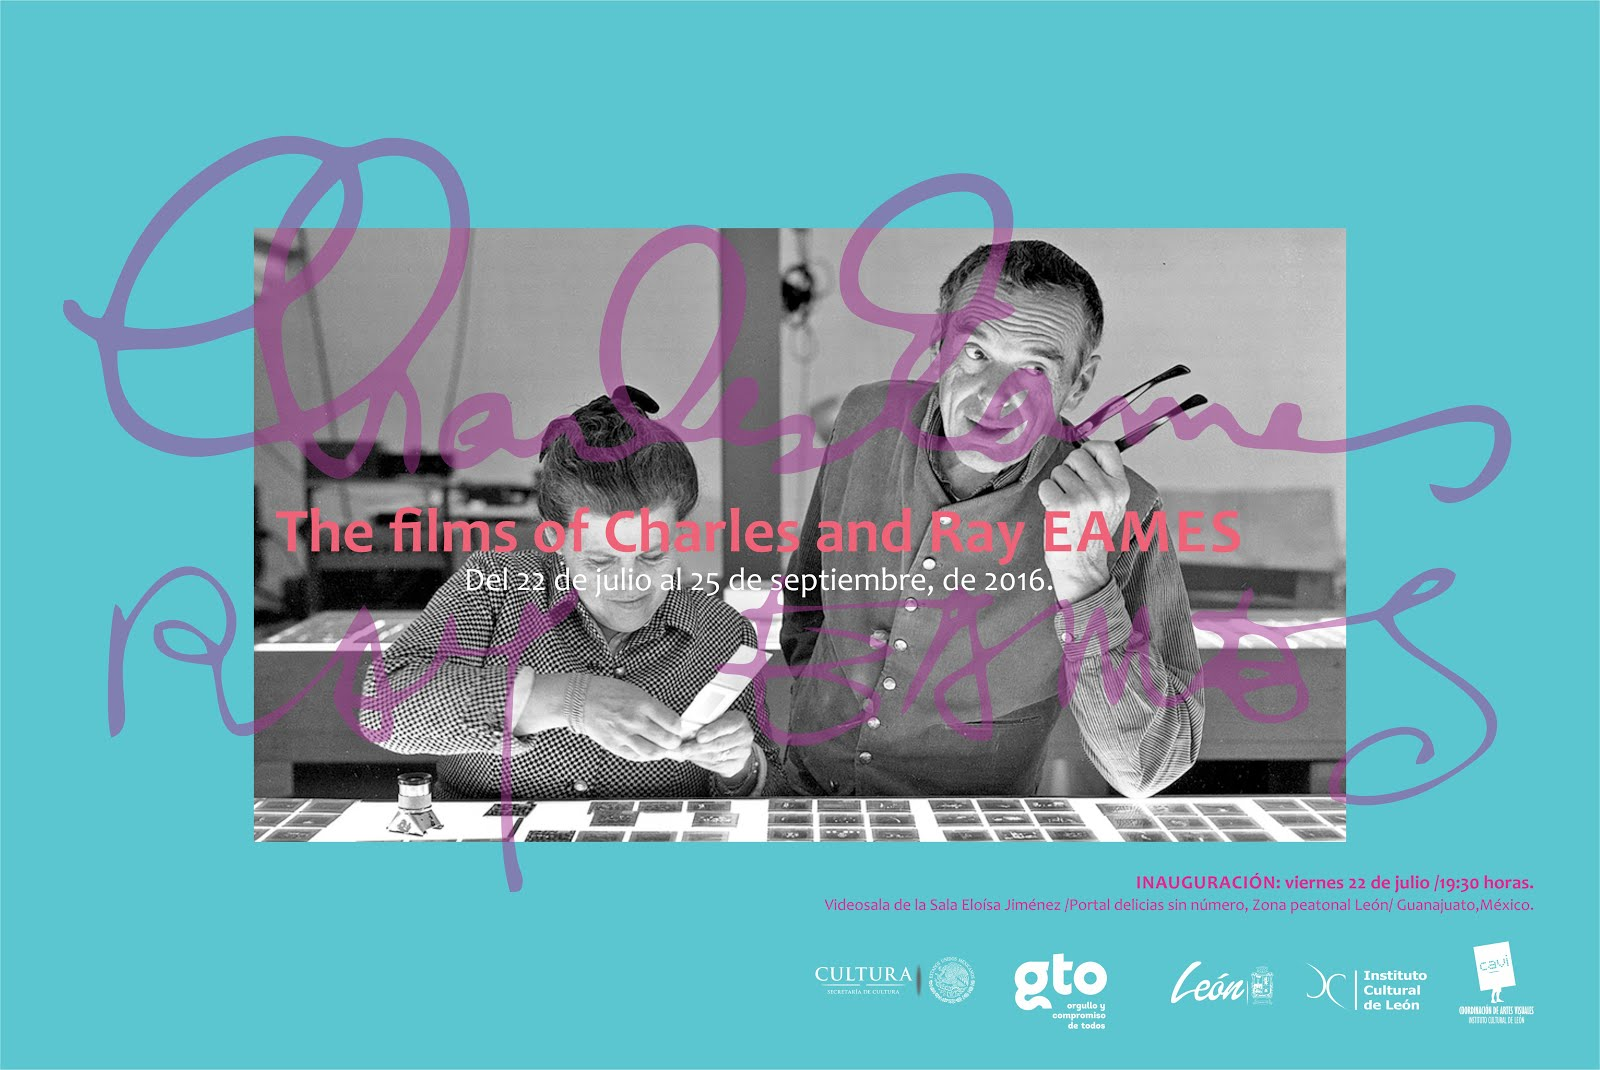 Los filmes de Charles and Ray Eames